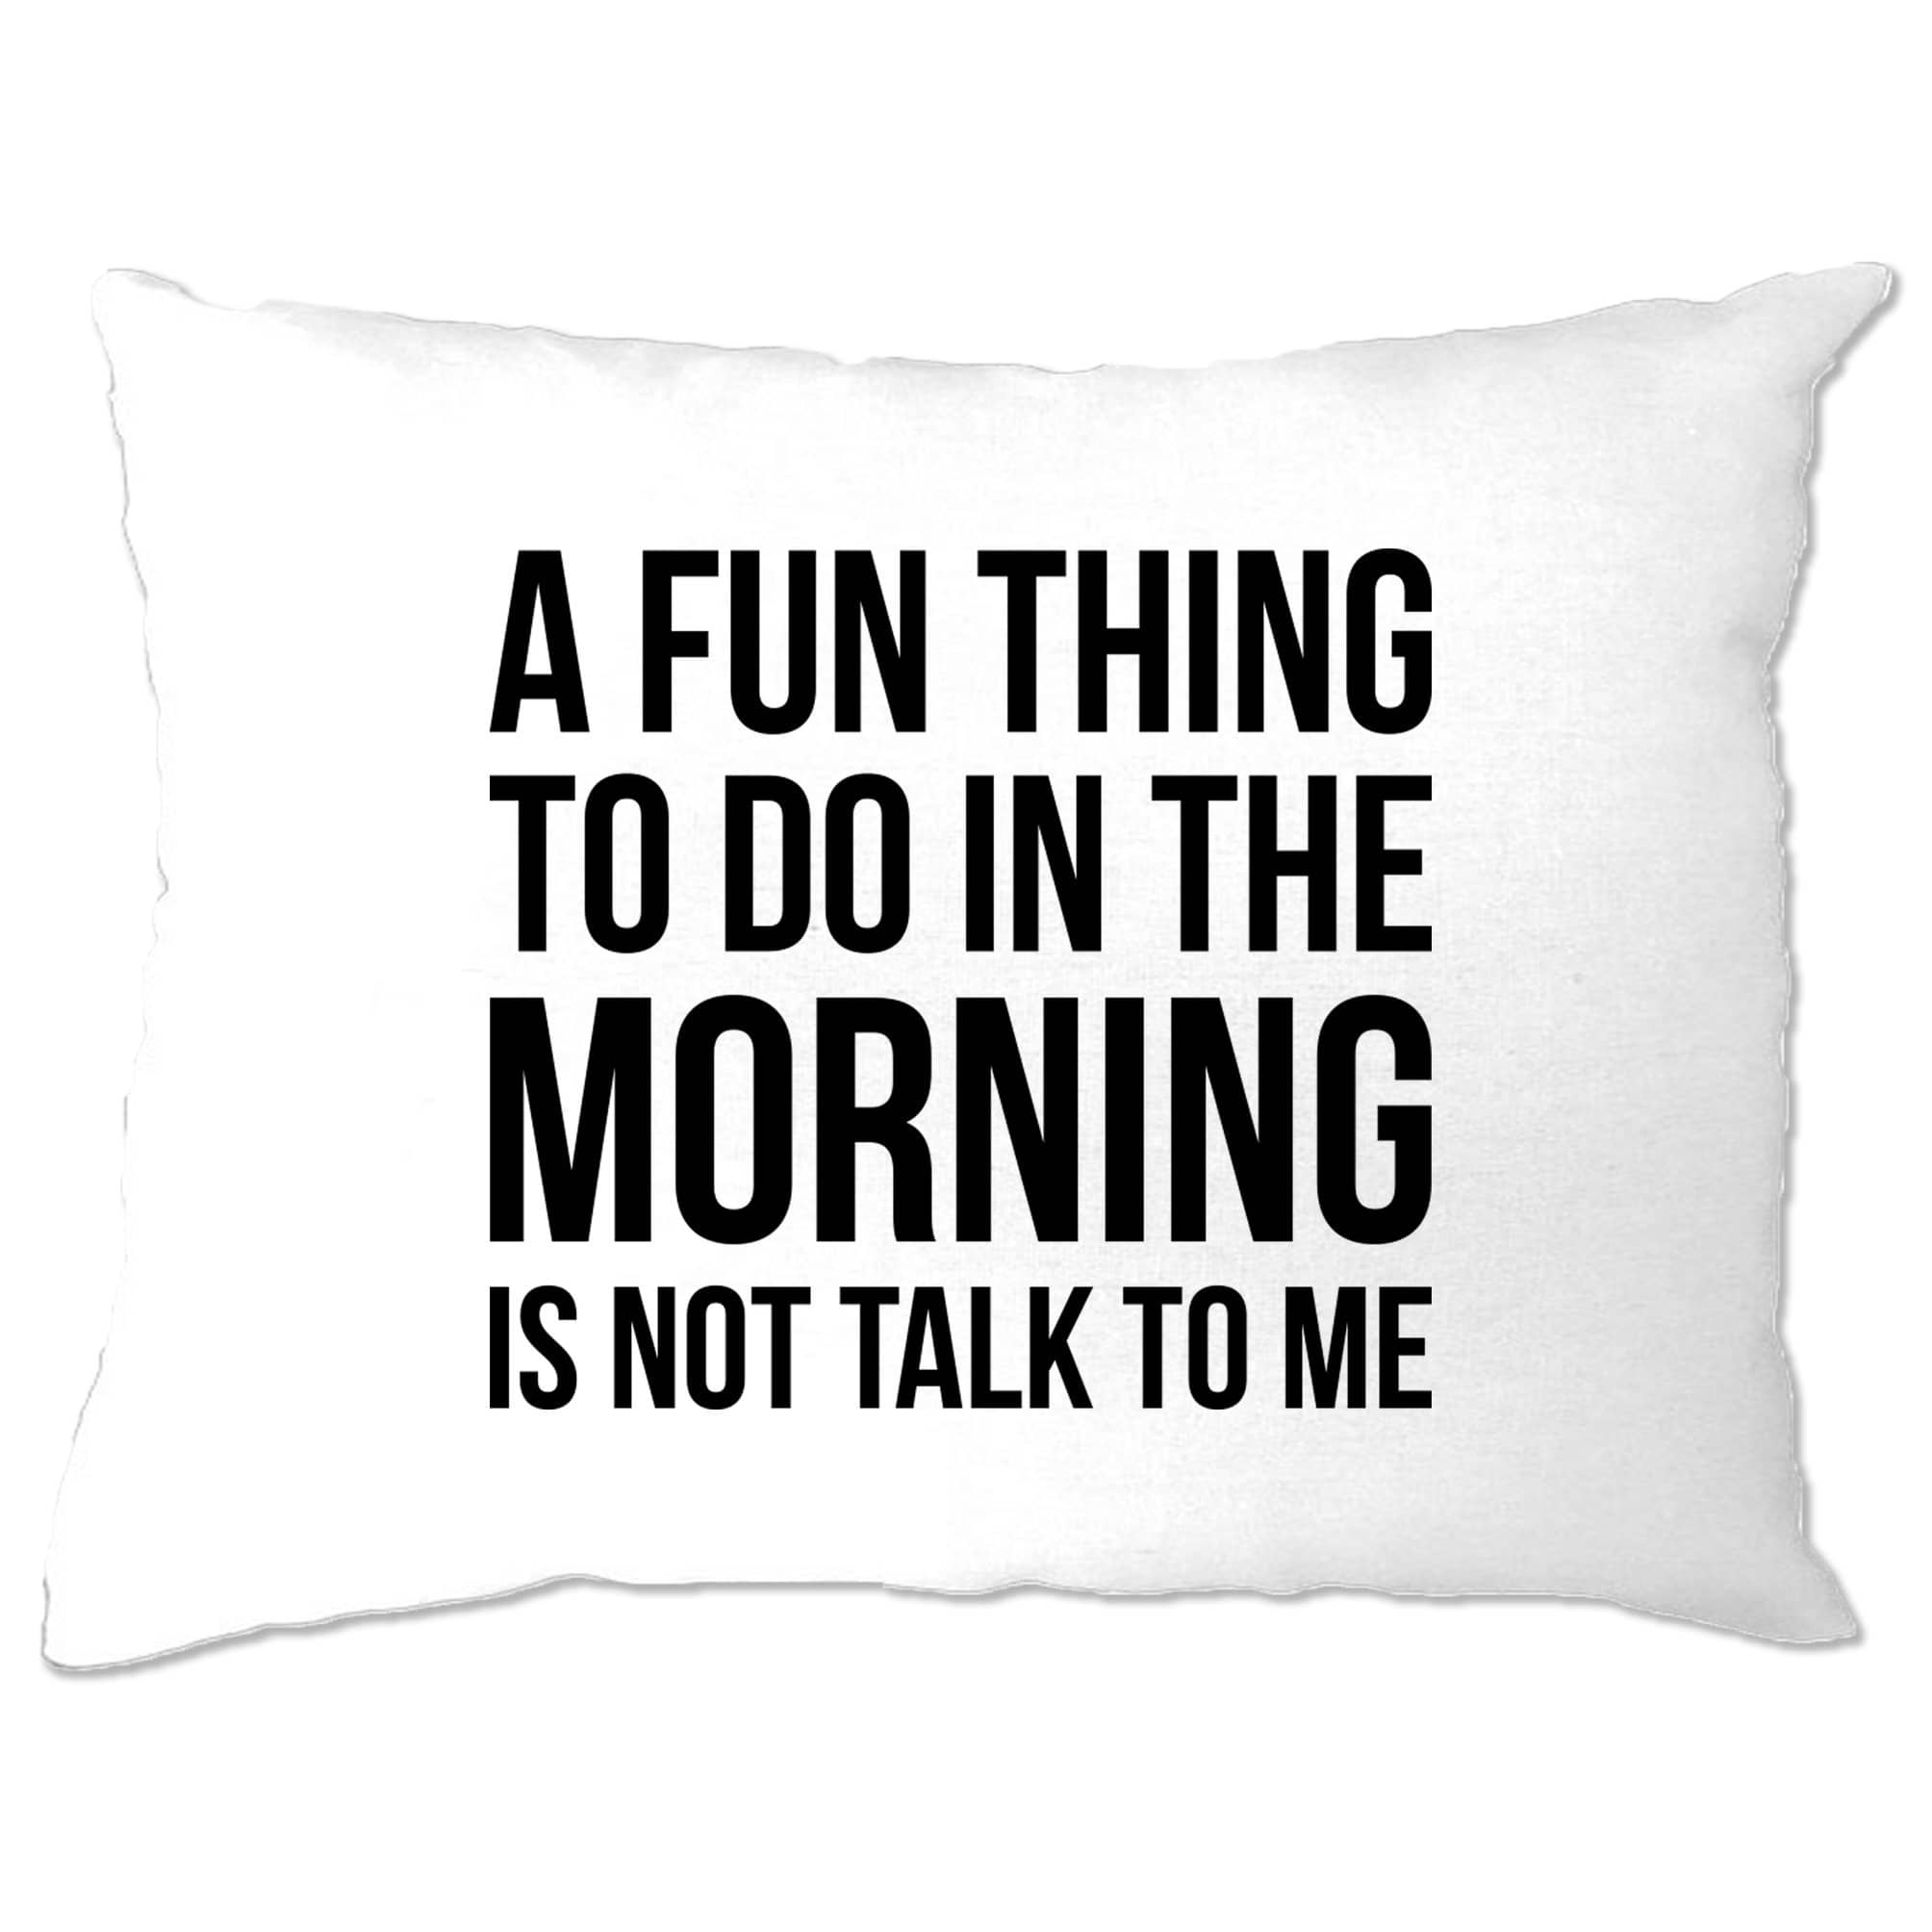 Novelty Pillow Case A Fun Thing To Do Is Not Talk To Me